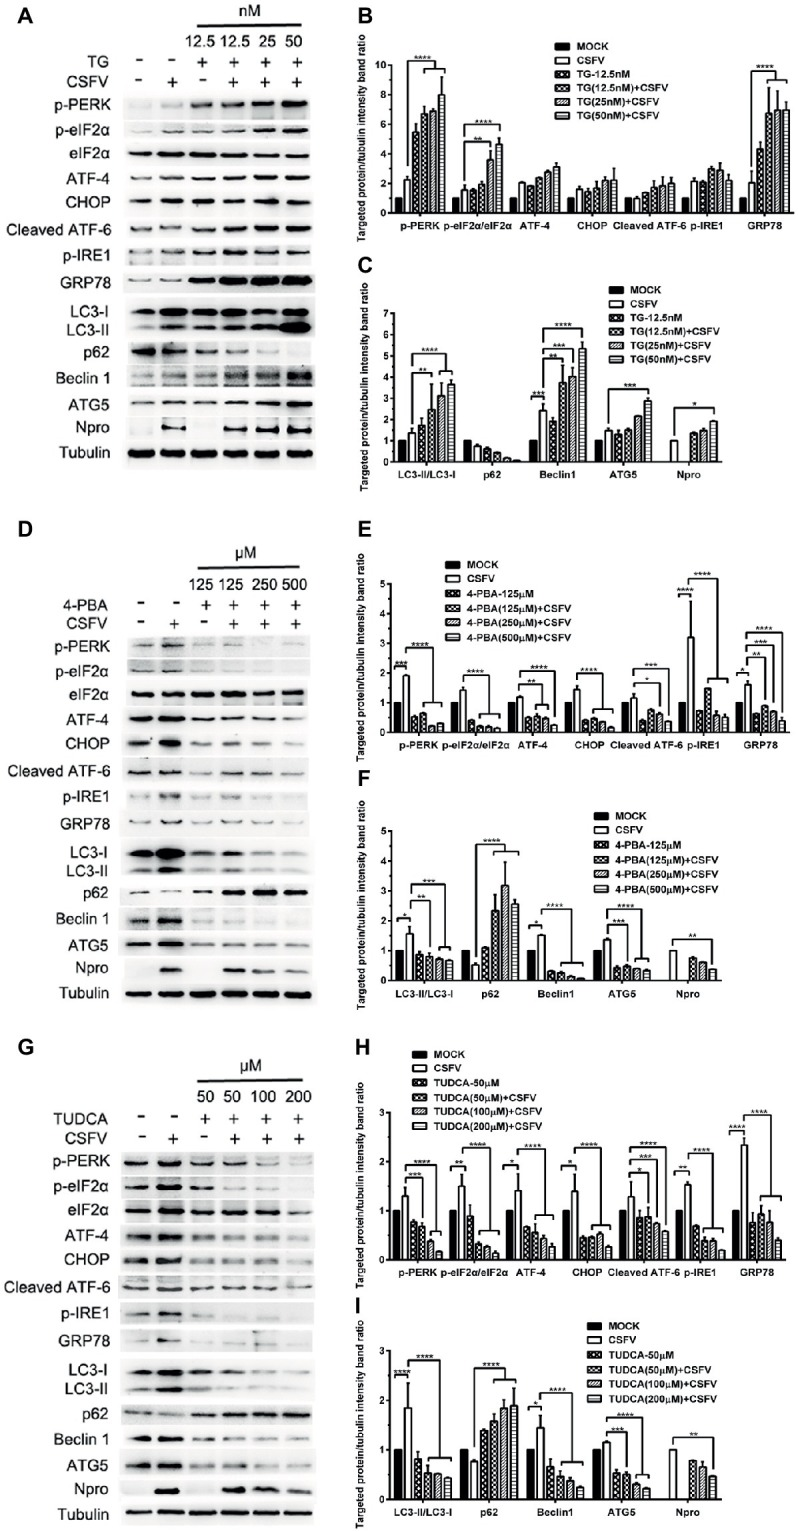 """Pharmacological regulation of ER stress changes expression of autophagic proteins in CSFV-infected PK-15 cells. PK-15 cells cultured in 6-well microplates were pretreated with ER stress agonist TG (12.5, 25 and 50 nM) (A) , ER stress inhibitors 4-PBA (125, 250 and 500 μM) (D) and TUDCA (50, 100 and 200 μM) (G) for 6 h, respectively, and then subject to CSFV infection. After a 1.5 h of incubation, the cells were further cultured in maintenance media in the presence (TUDCA, 4-PBA) or absence (TG) of the drugs for 24 h. Additionally, cells pretreated with only MDRV or mock infection or only drugs were regarded as the control group. Cells were collected for preparation of protein samples in accordance with description in the """"materials and methods"""". Samples were quantitated by BCA assays and then loaded for western blot analyses using specific antibody against the indicated targets. Tubulin was used as a loading control. Grayscale value of the bands were analyzed with ImageJ software, and generations of images for protein quantitation and all statistical analyses (B,C,E,F,H,I) were performed with GraphPad Prism 6. All the pictures of western blot represent one of two independent experiments, and all the quantitative data shown are expressed as mean ± SD values of two independent experiments. Two-way ANOVA test: * p"""